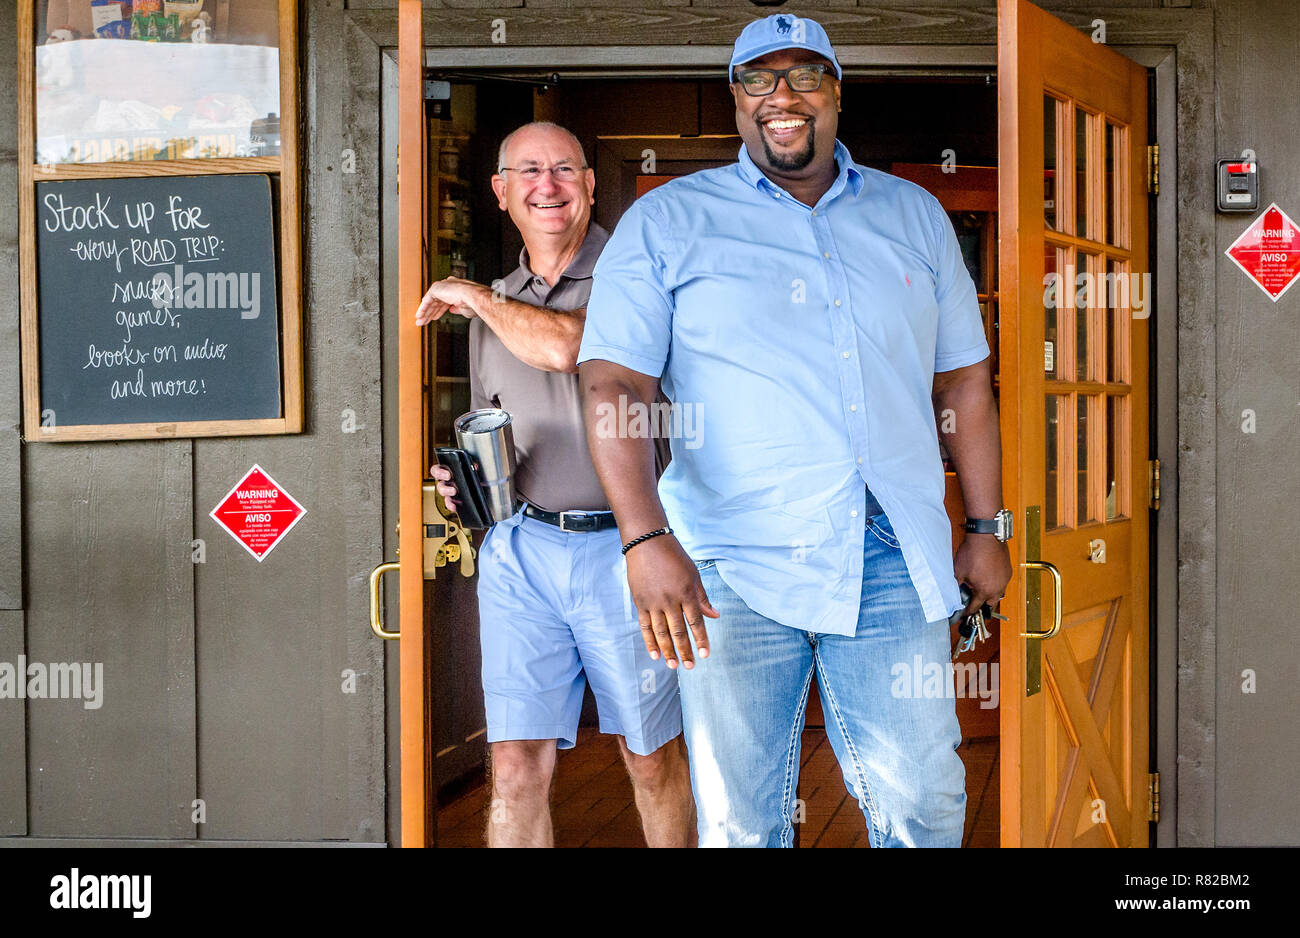 Birmingham pastors Bob Flayhart and Alton Hardy smile as they leave Cracker Barrel in Birmingham, Alabama. They are working to improve race relations. - Stock Image